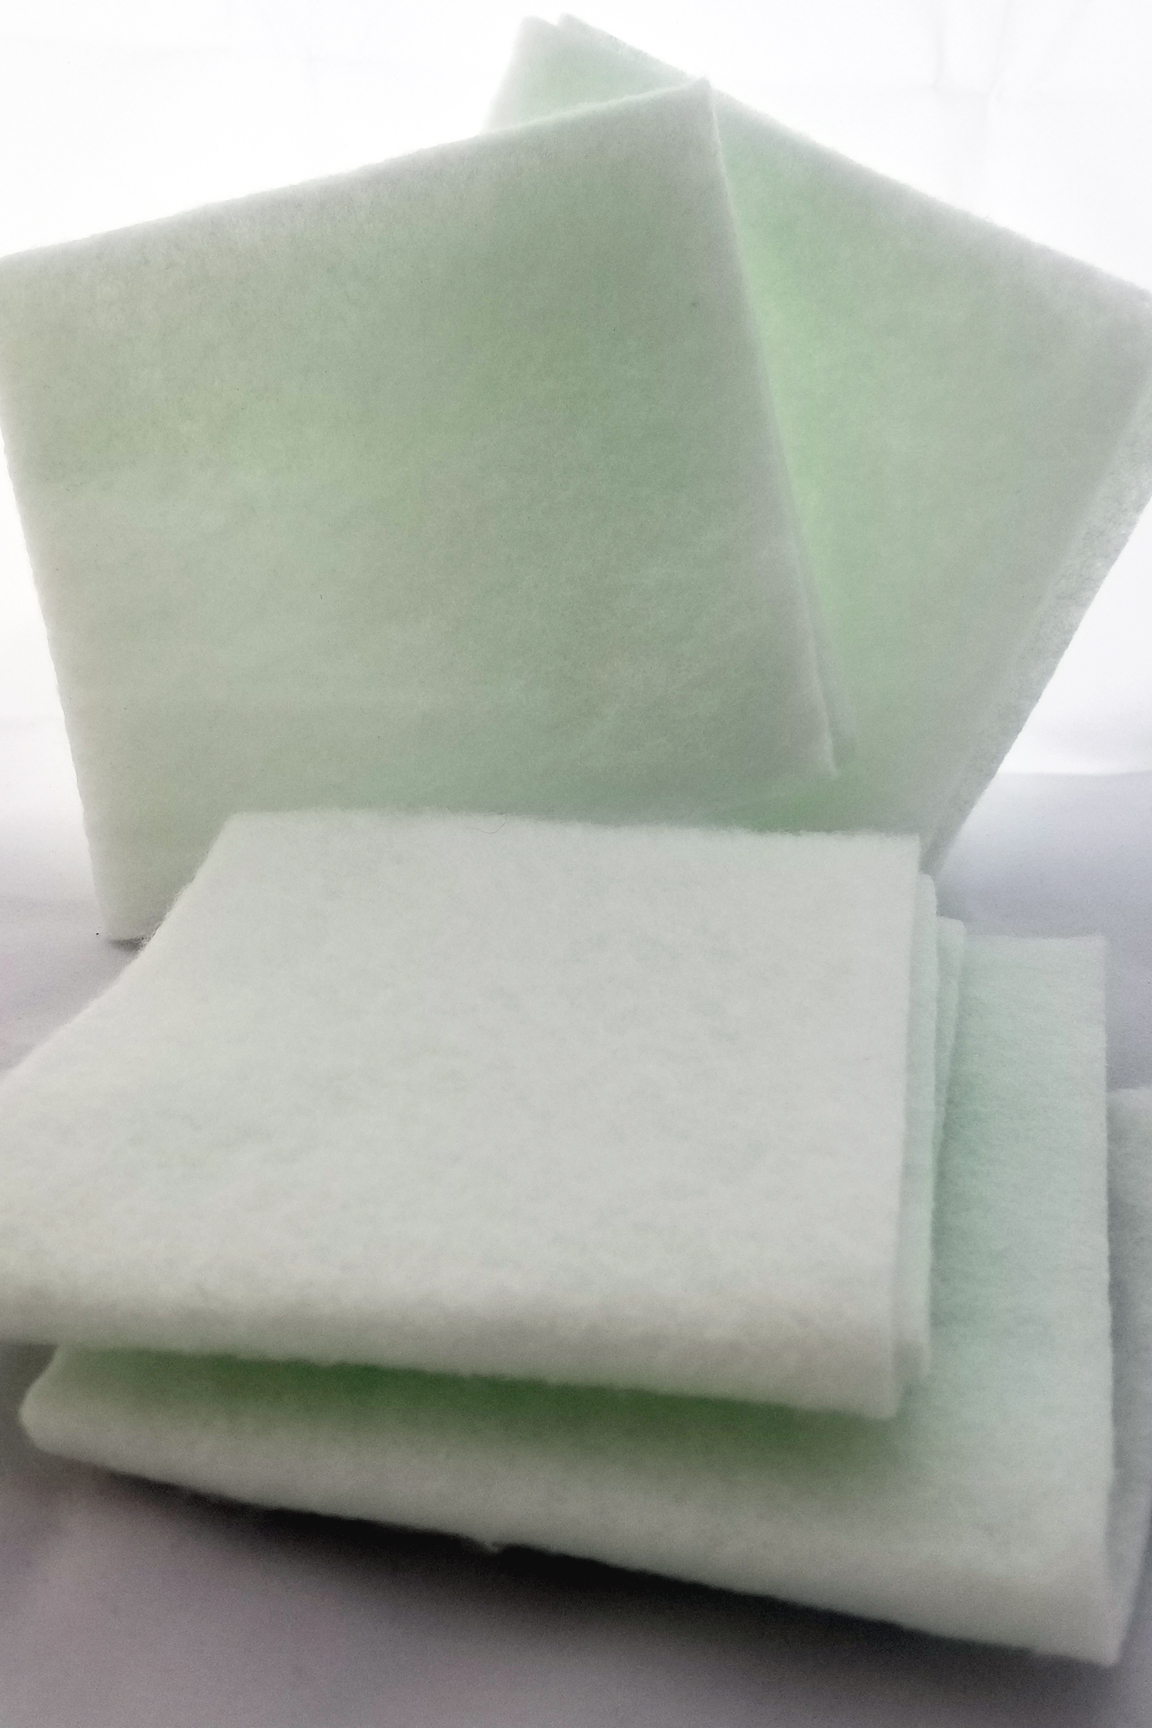 4-Pack Disposable Soap-Infused Cleaning Cloths